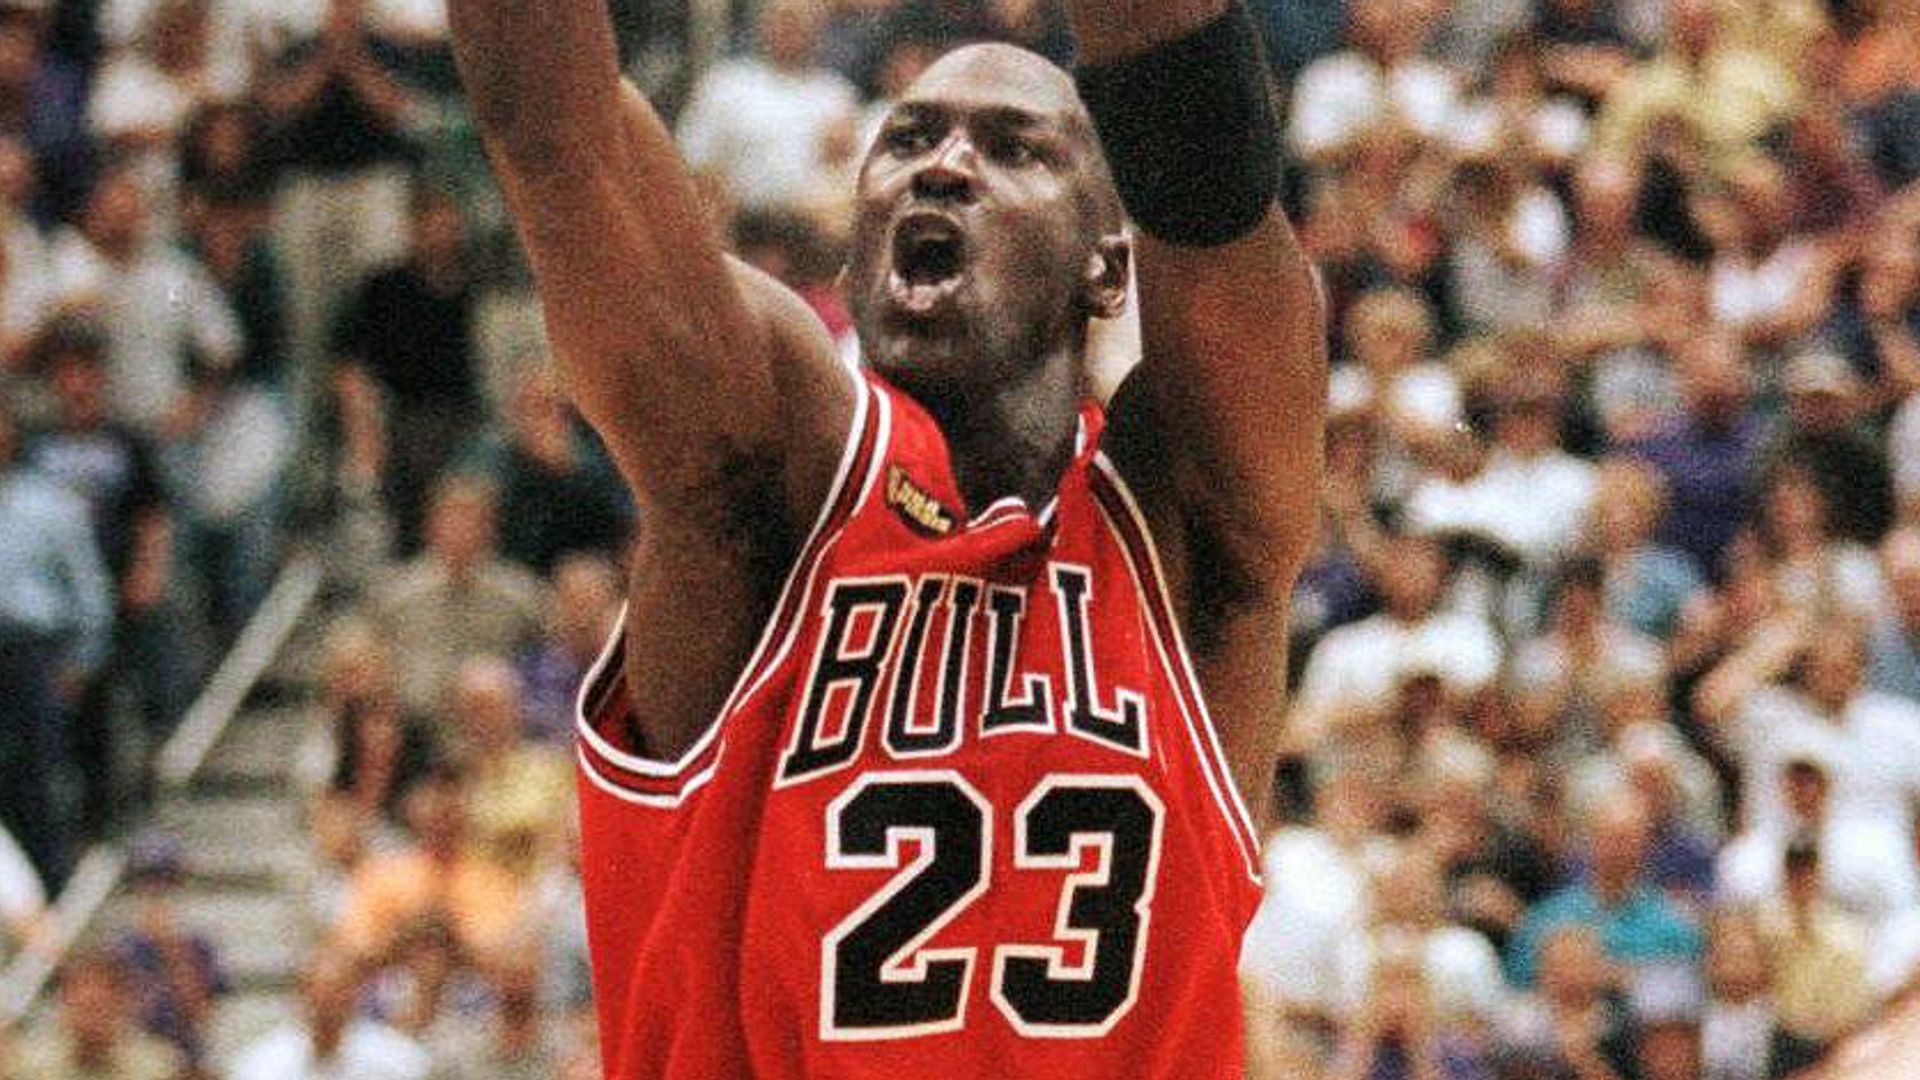 MJ's game-winner? There was nothing I could do